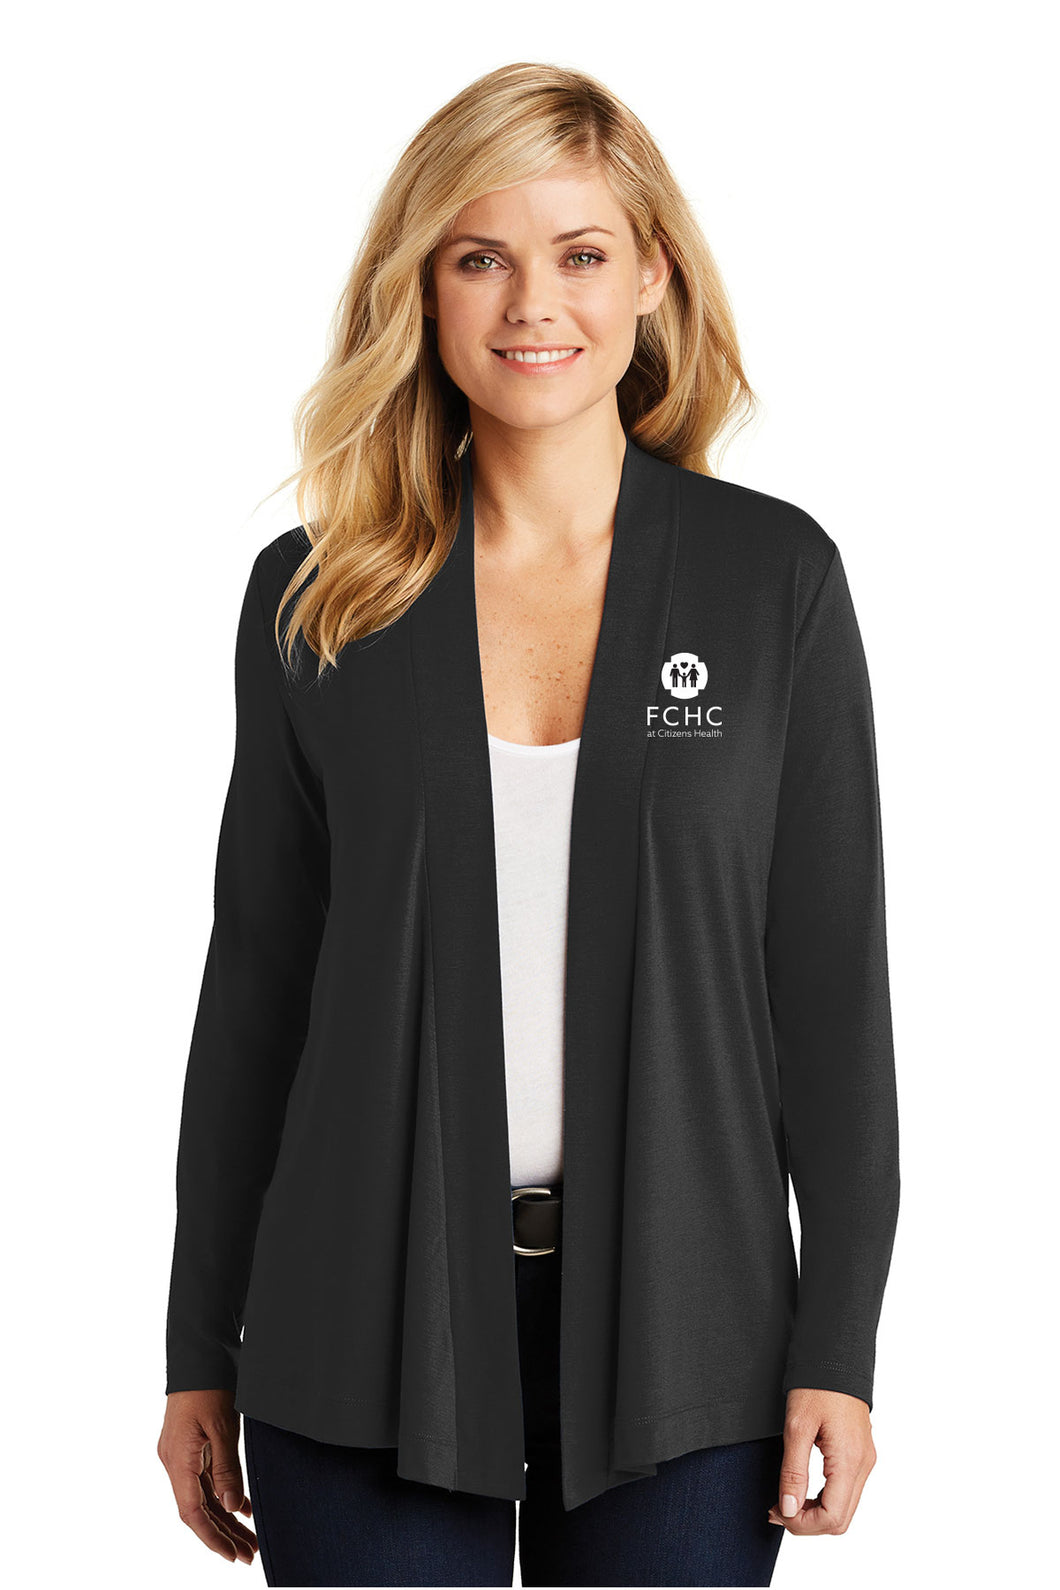 Port Authority® Ladies Concept Open Cardigan - FCHC